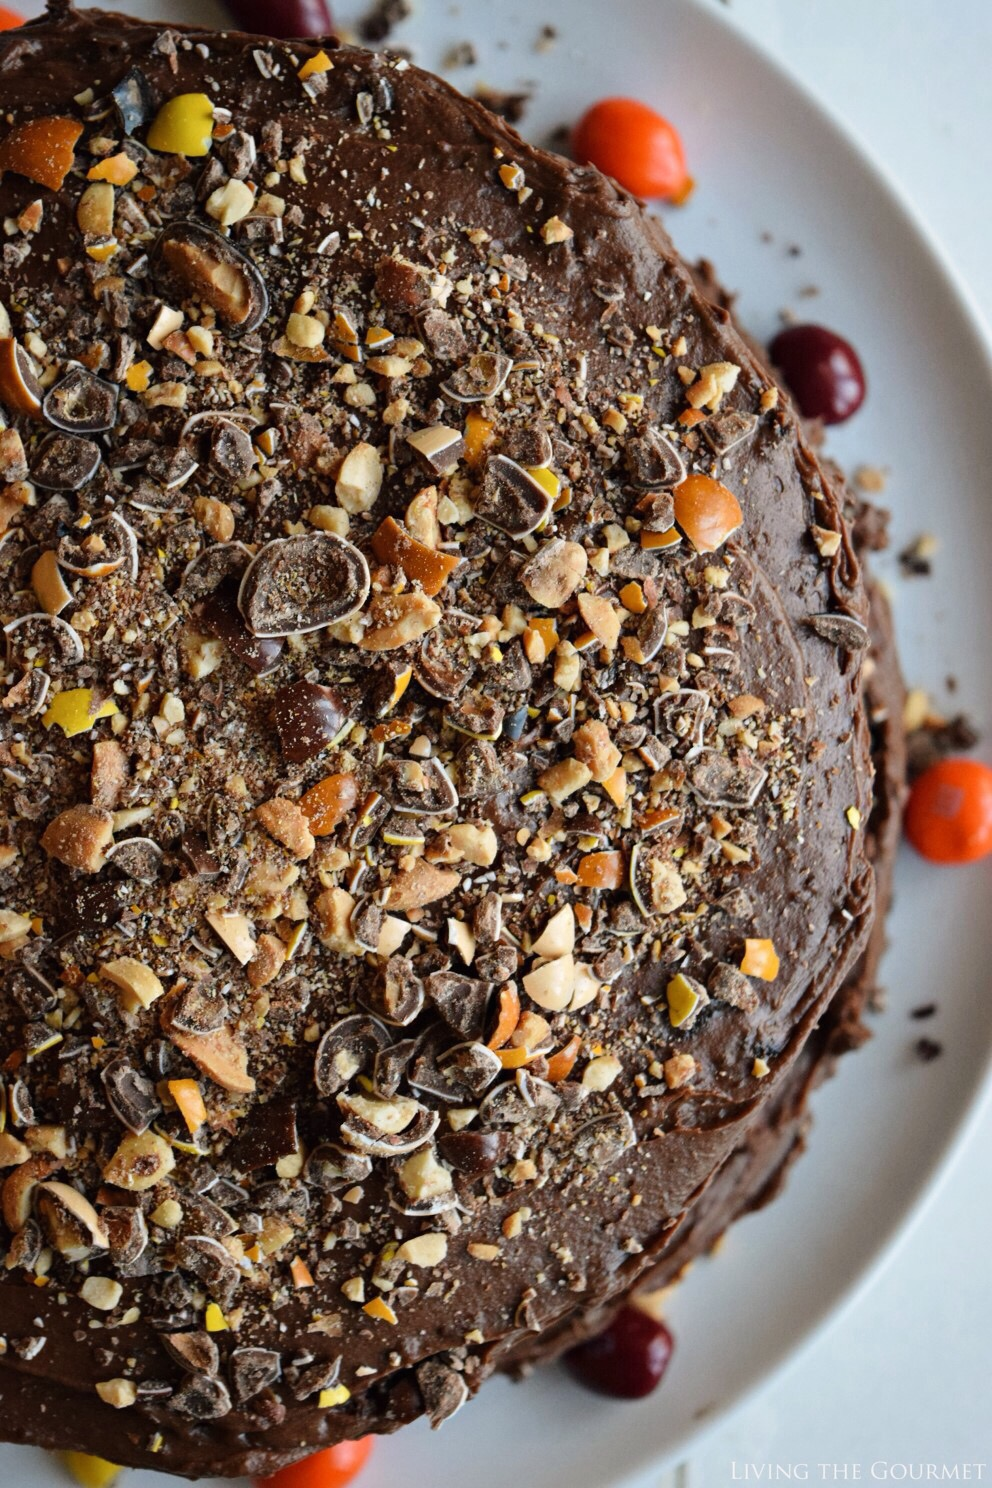 Living the Gourmet: Coffee Nut Chocolate Cake | #MMSFlavorVote #Walmart #Ad